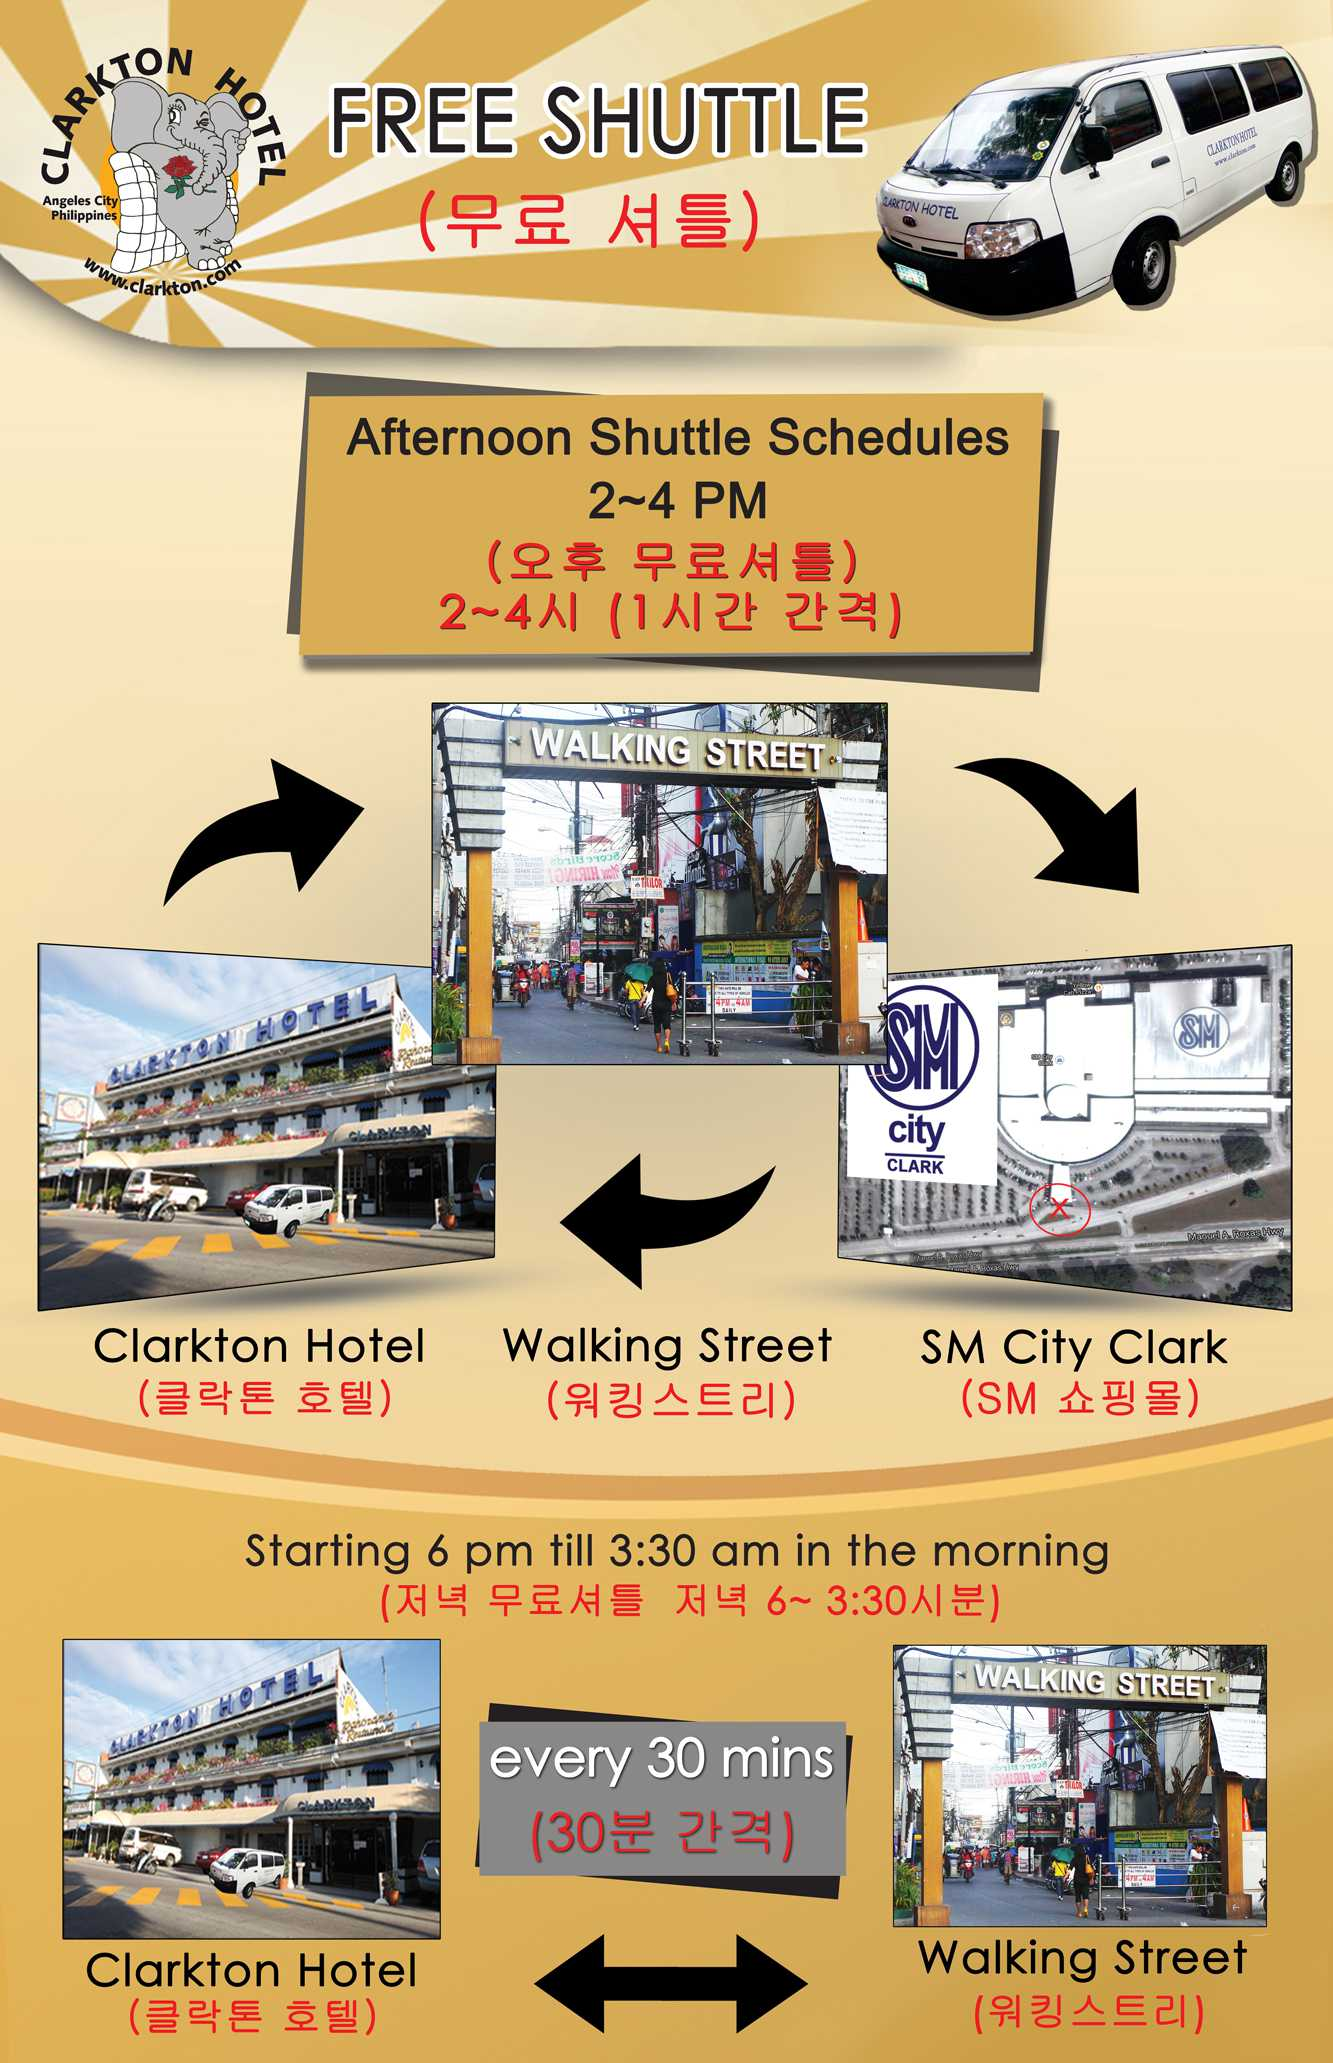 Free Shuttle Service Clarkton Hotel Angeles City 5